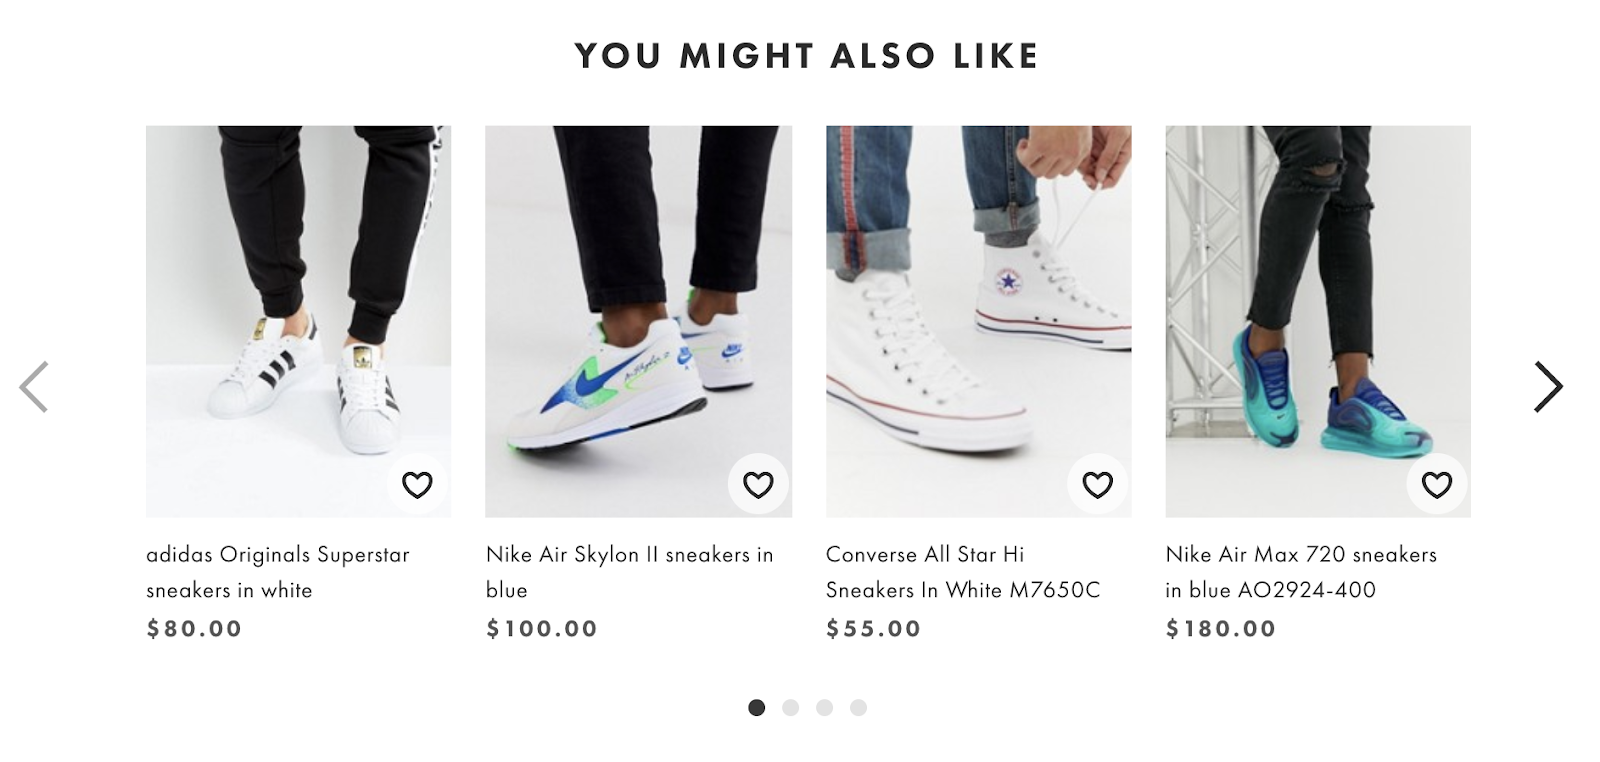 optimize ecommerce product pages with related product suggestions